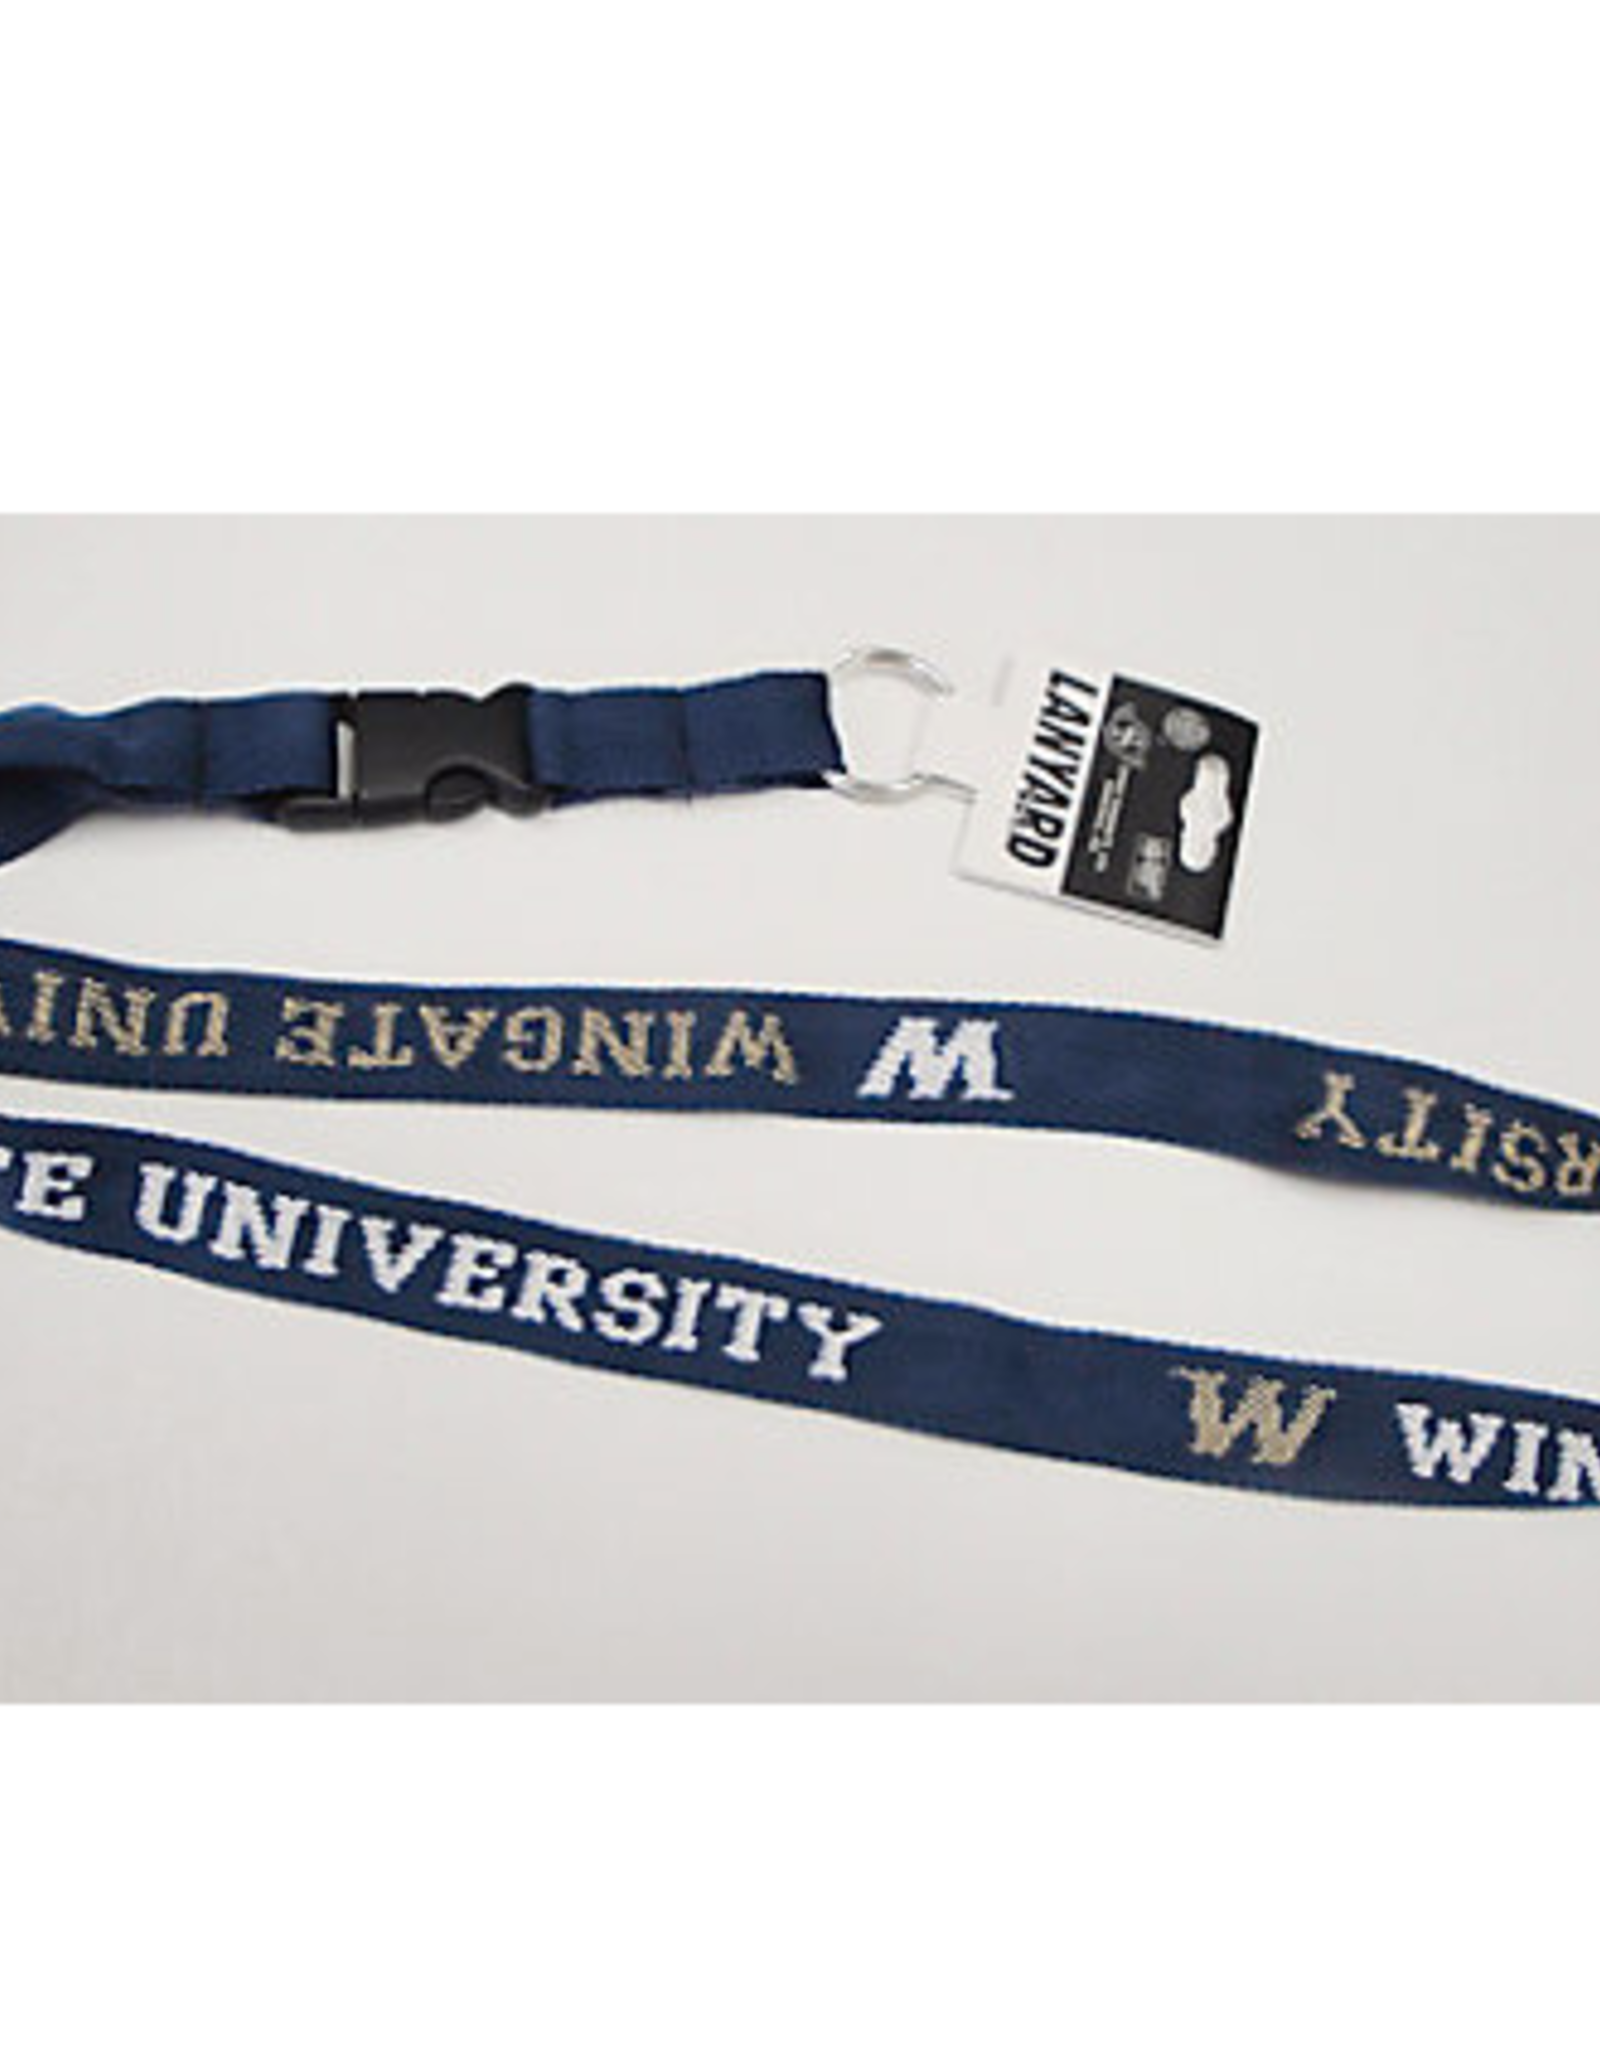 Berkeley Woven Lanyard with Vegas Gold and White Wingate University W